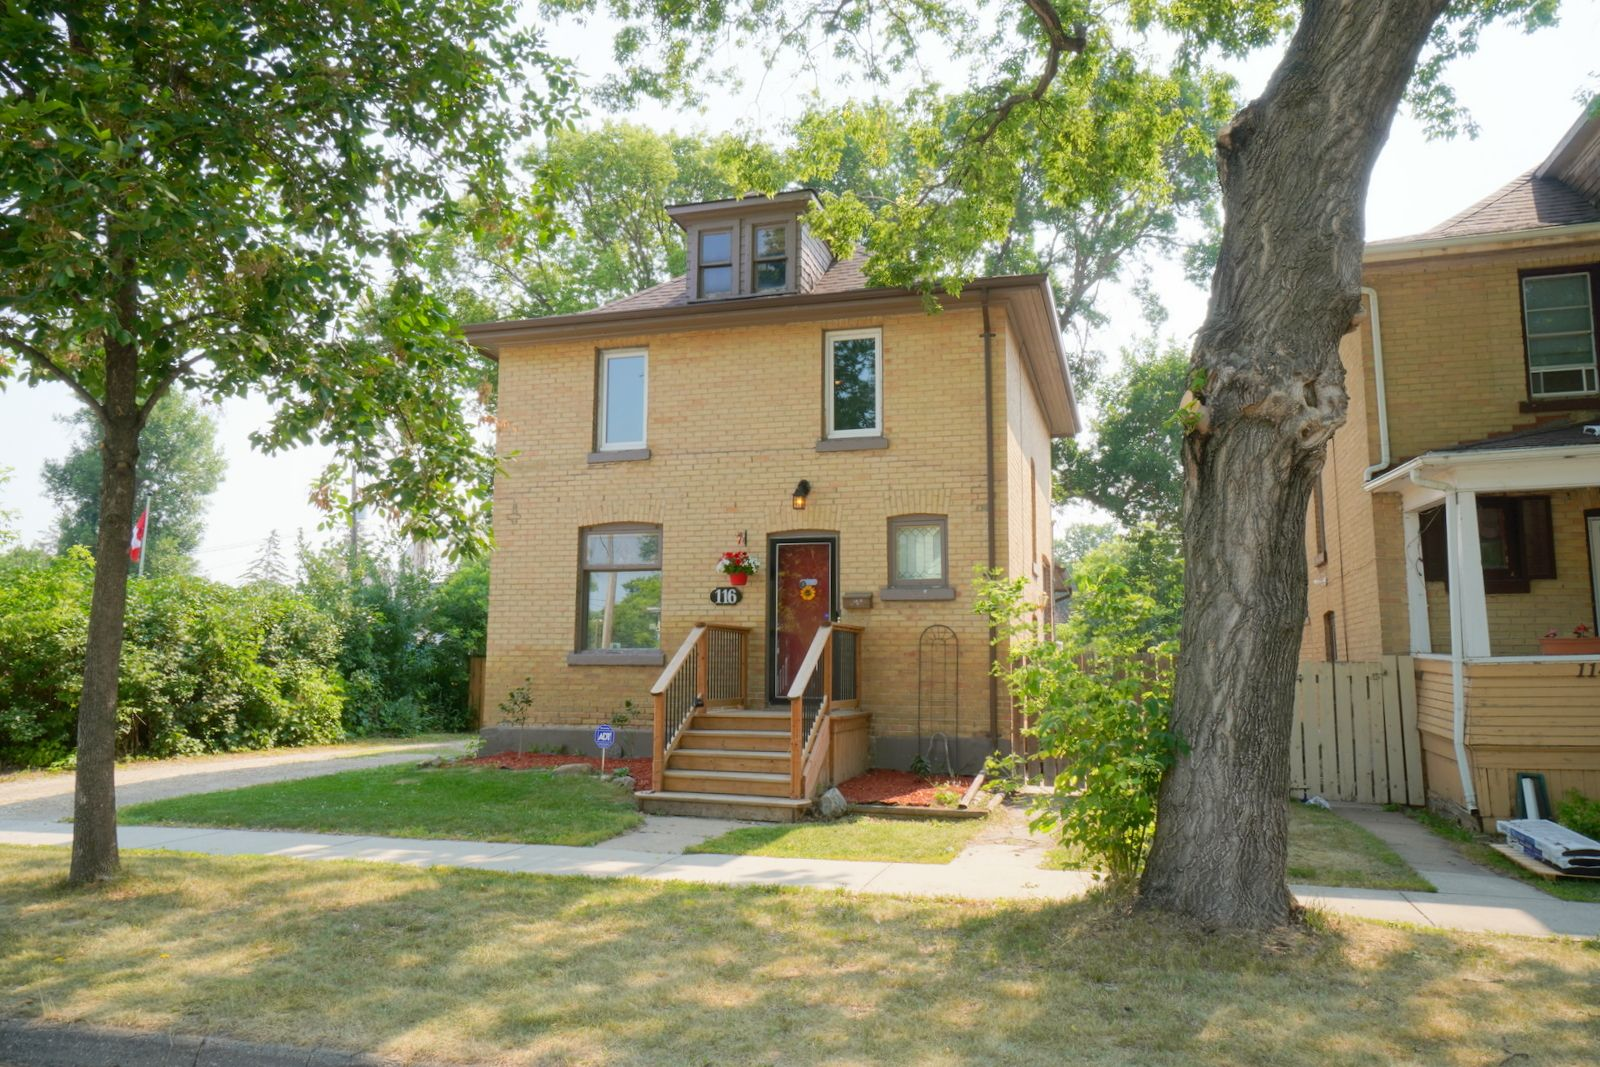 Main Photo: 116 4th St NW in Portage la Prairie: House for sale : MLS®# 202117718